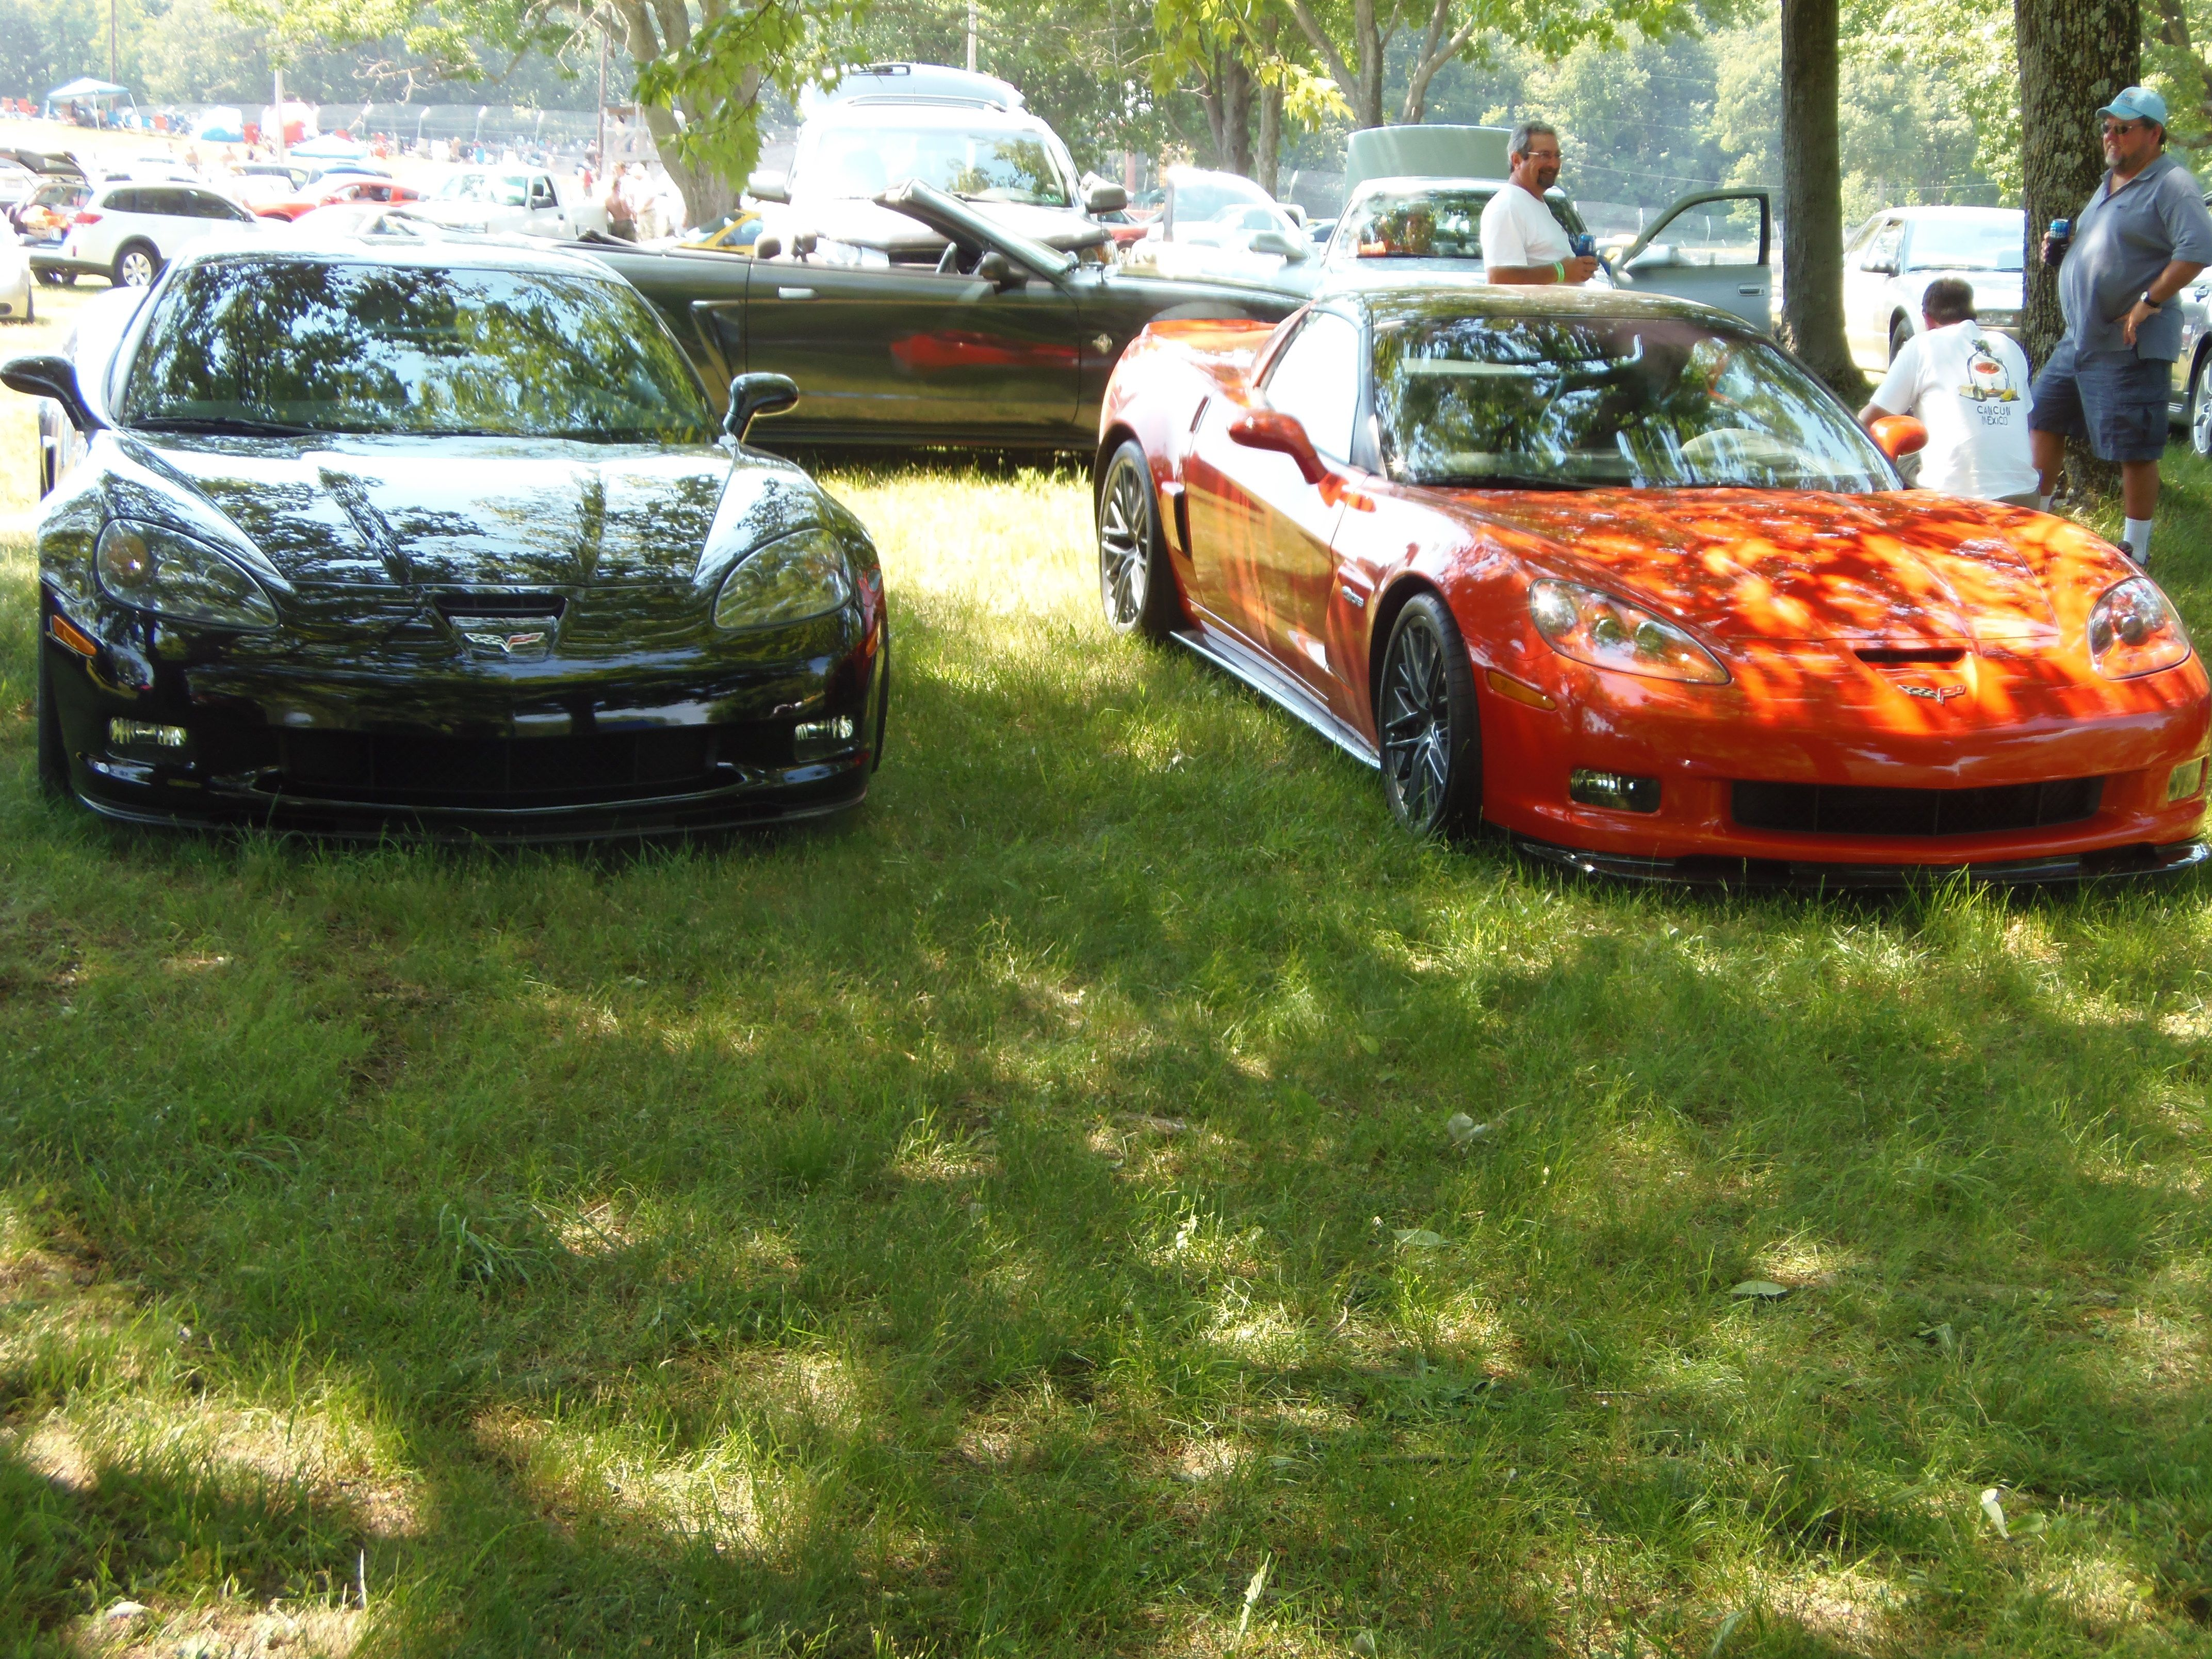 Mid Ohio Raceway >> Two Zo6 Corvettes In The Infield At Mid Ohio Raceway In